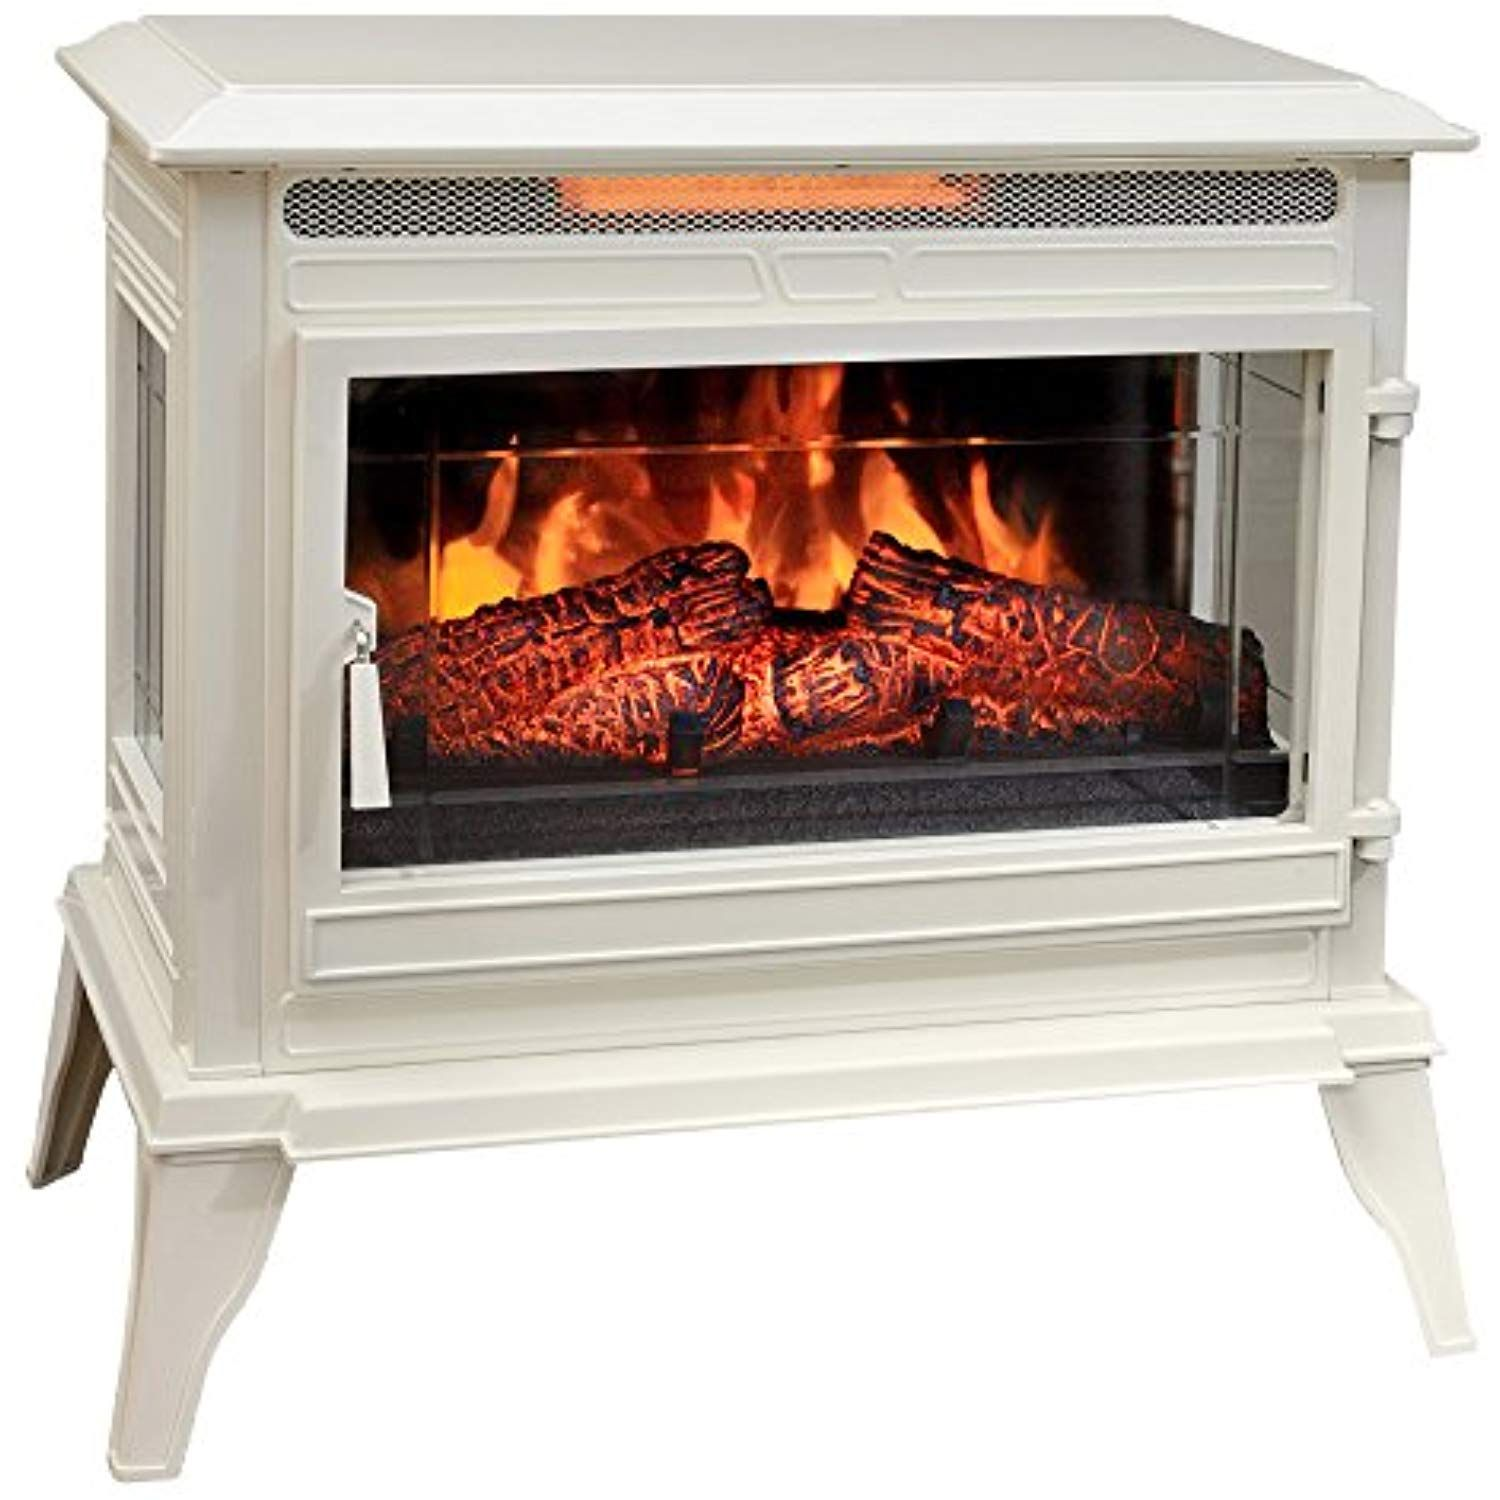 comfort smart jackson infrared electric fireplace stove heater rh pinterest com